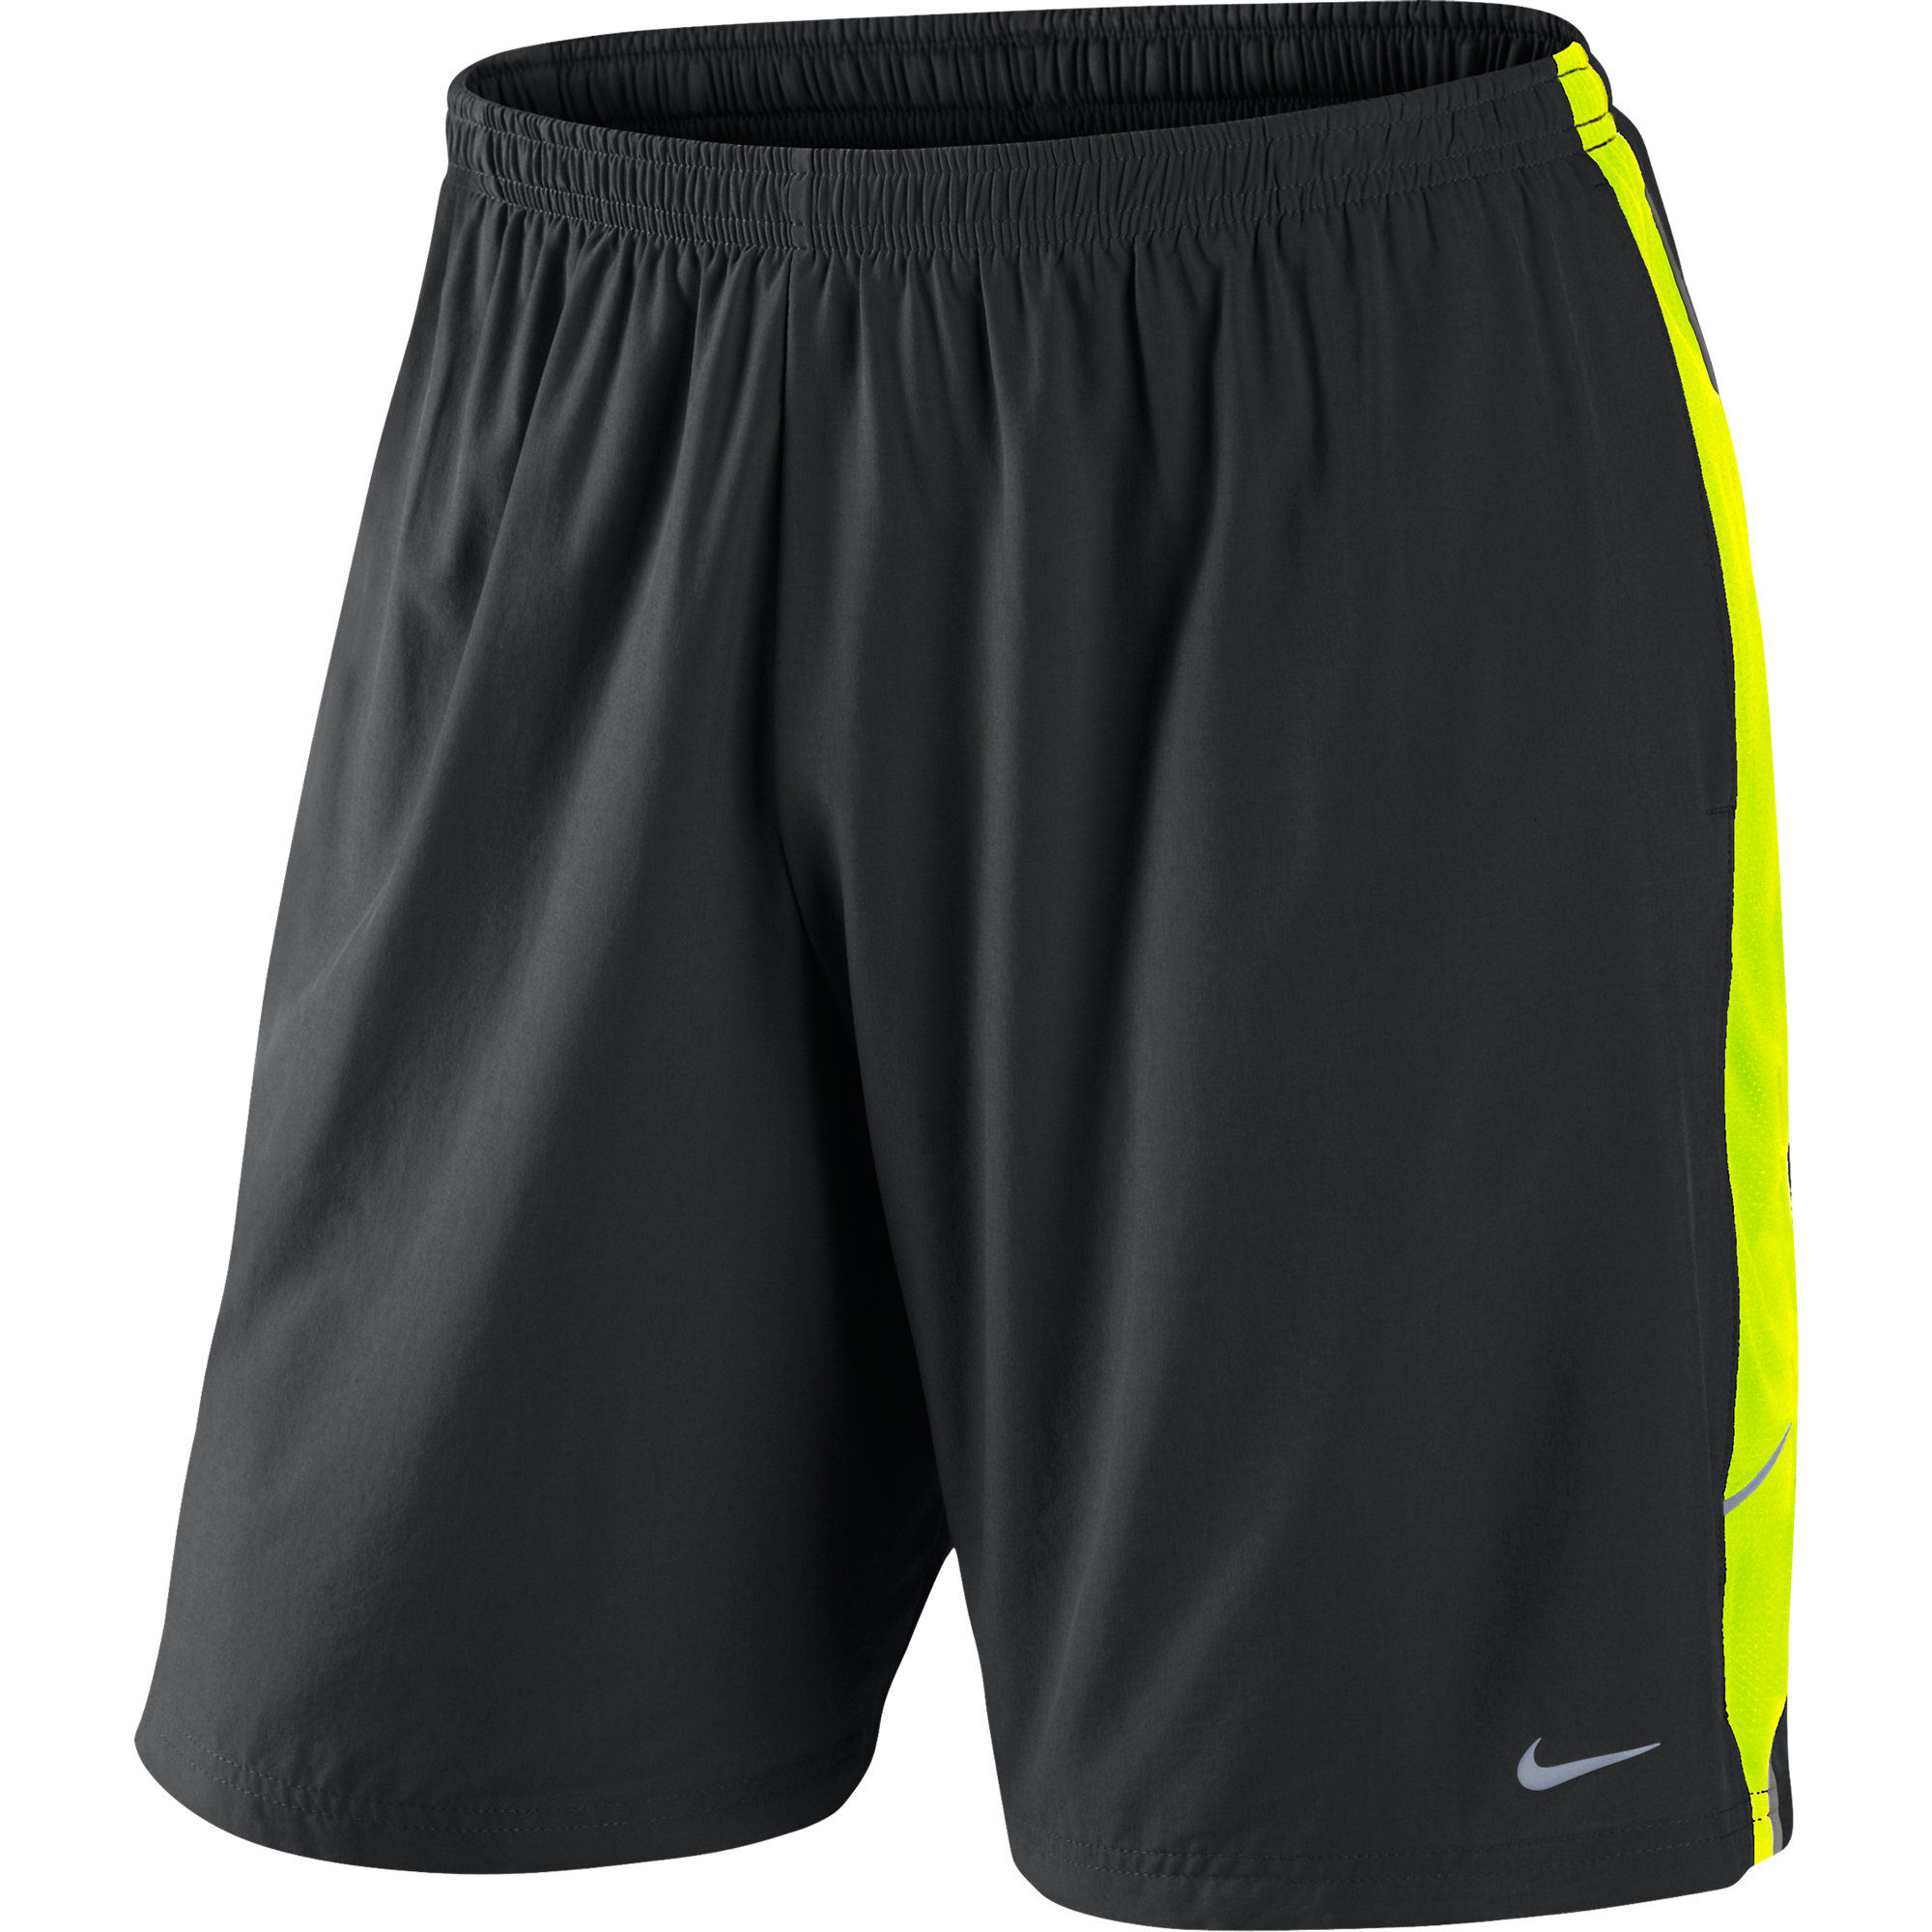 wiggle nike 9 inch sweat wicking running short fa12 running shorts. Black Bedroom Furniture Sets. Home Design Ideas